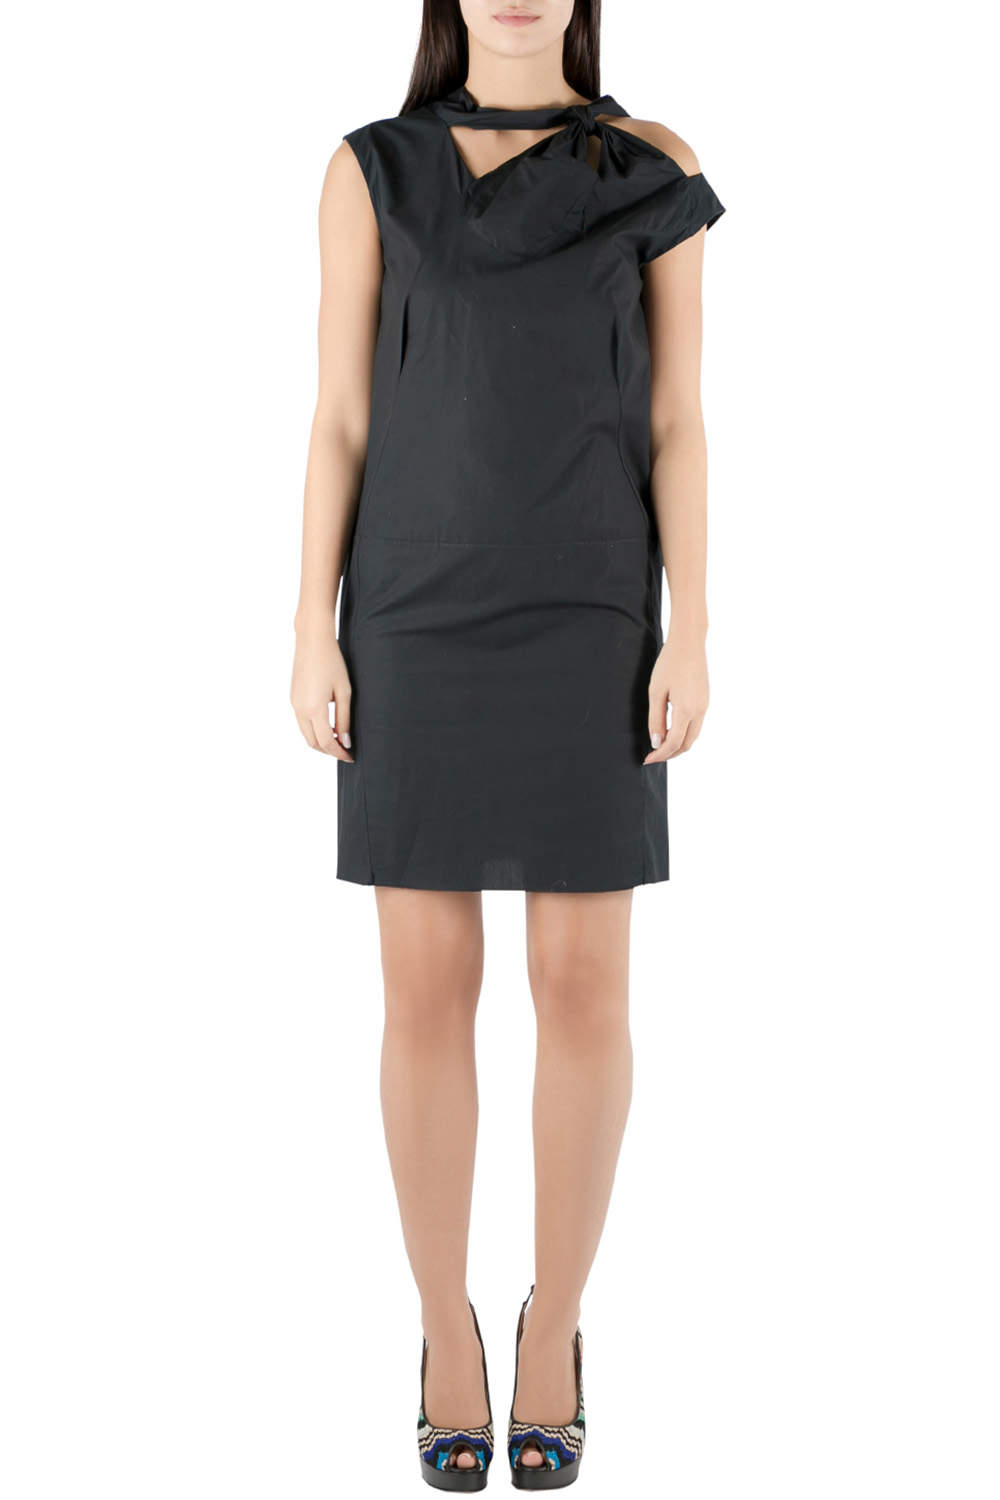 Marni Black Cotton Bow Knot Detail Shift Dress XS